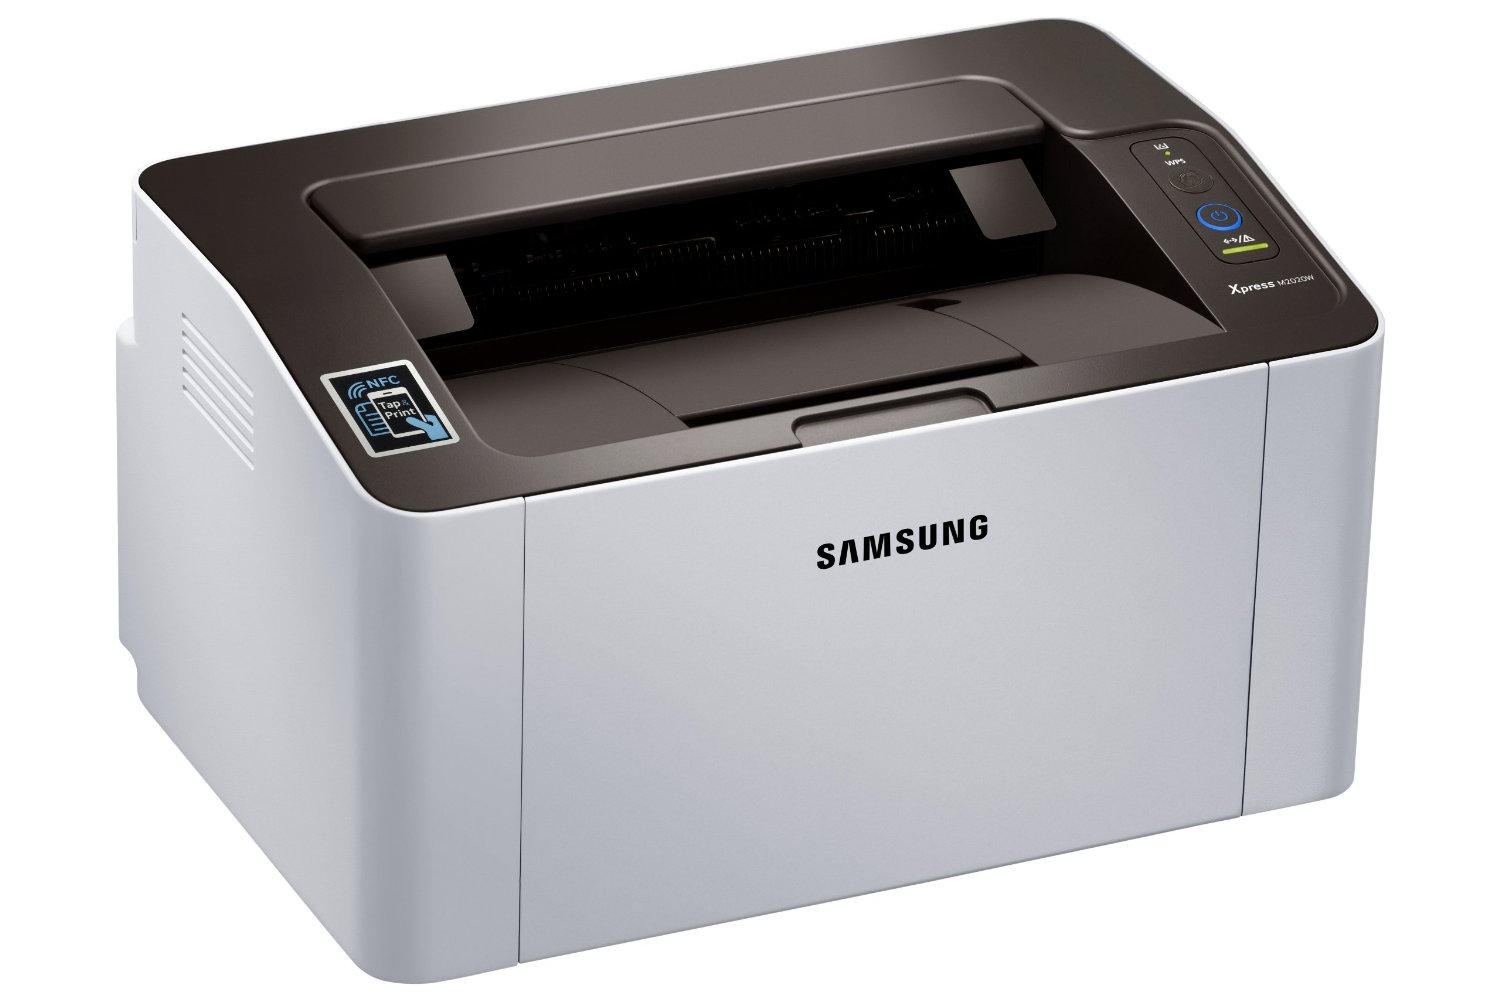 Samsung Wireless Printer